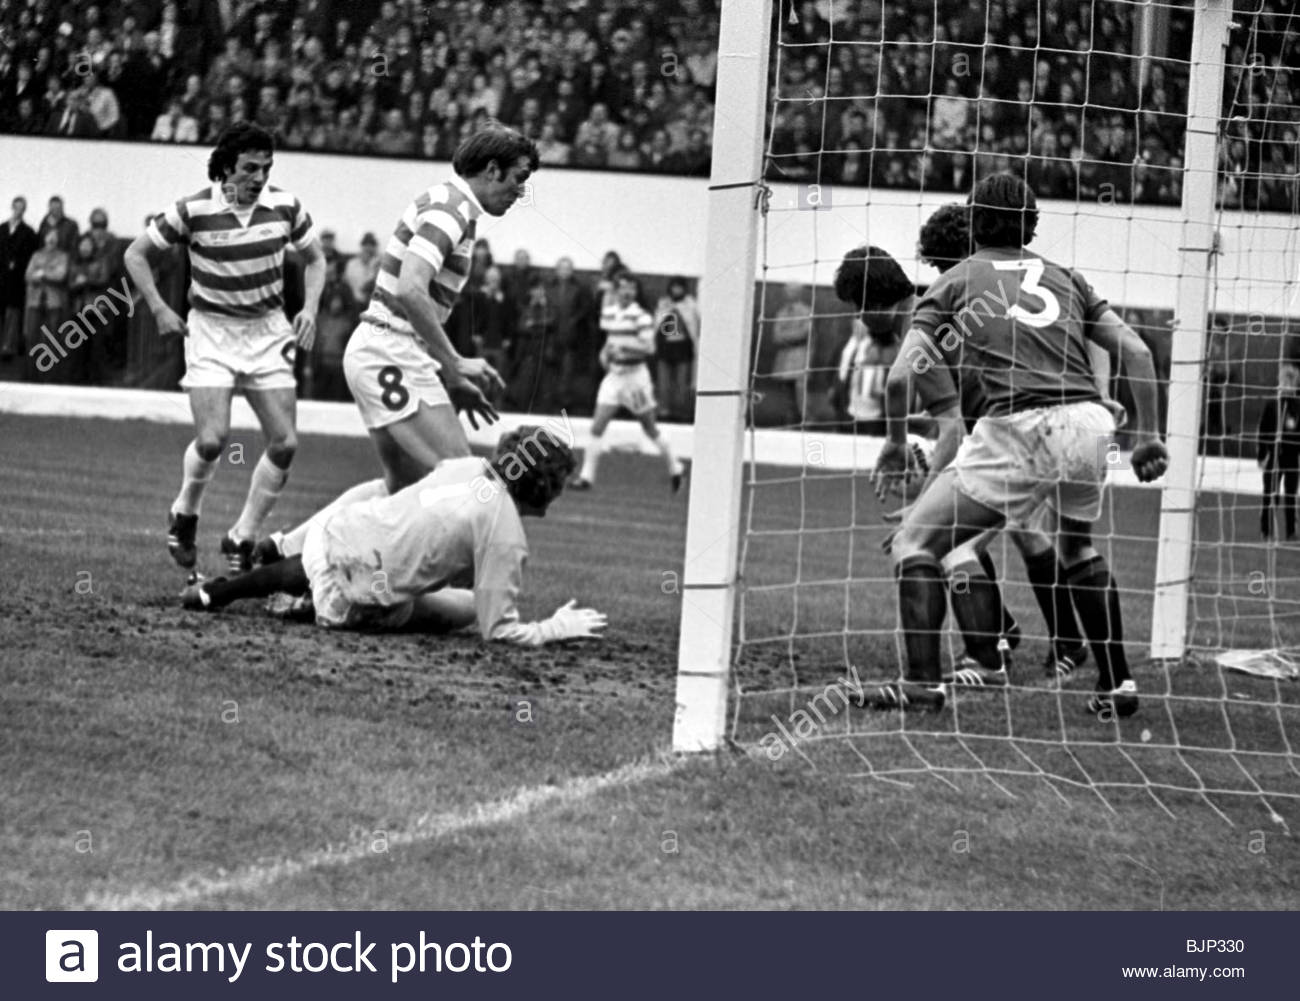 07/05/77 SCOTTISH CUP FINAL CELTIC v RANGERS Rangers' John Greig (NO 3) looks on as Derek Johnstone appears - Stock Image